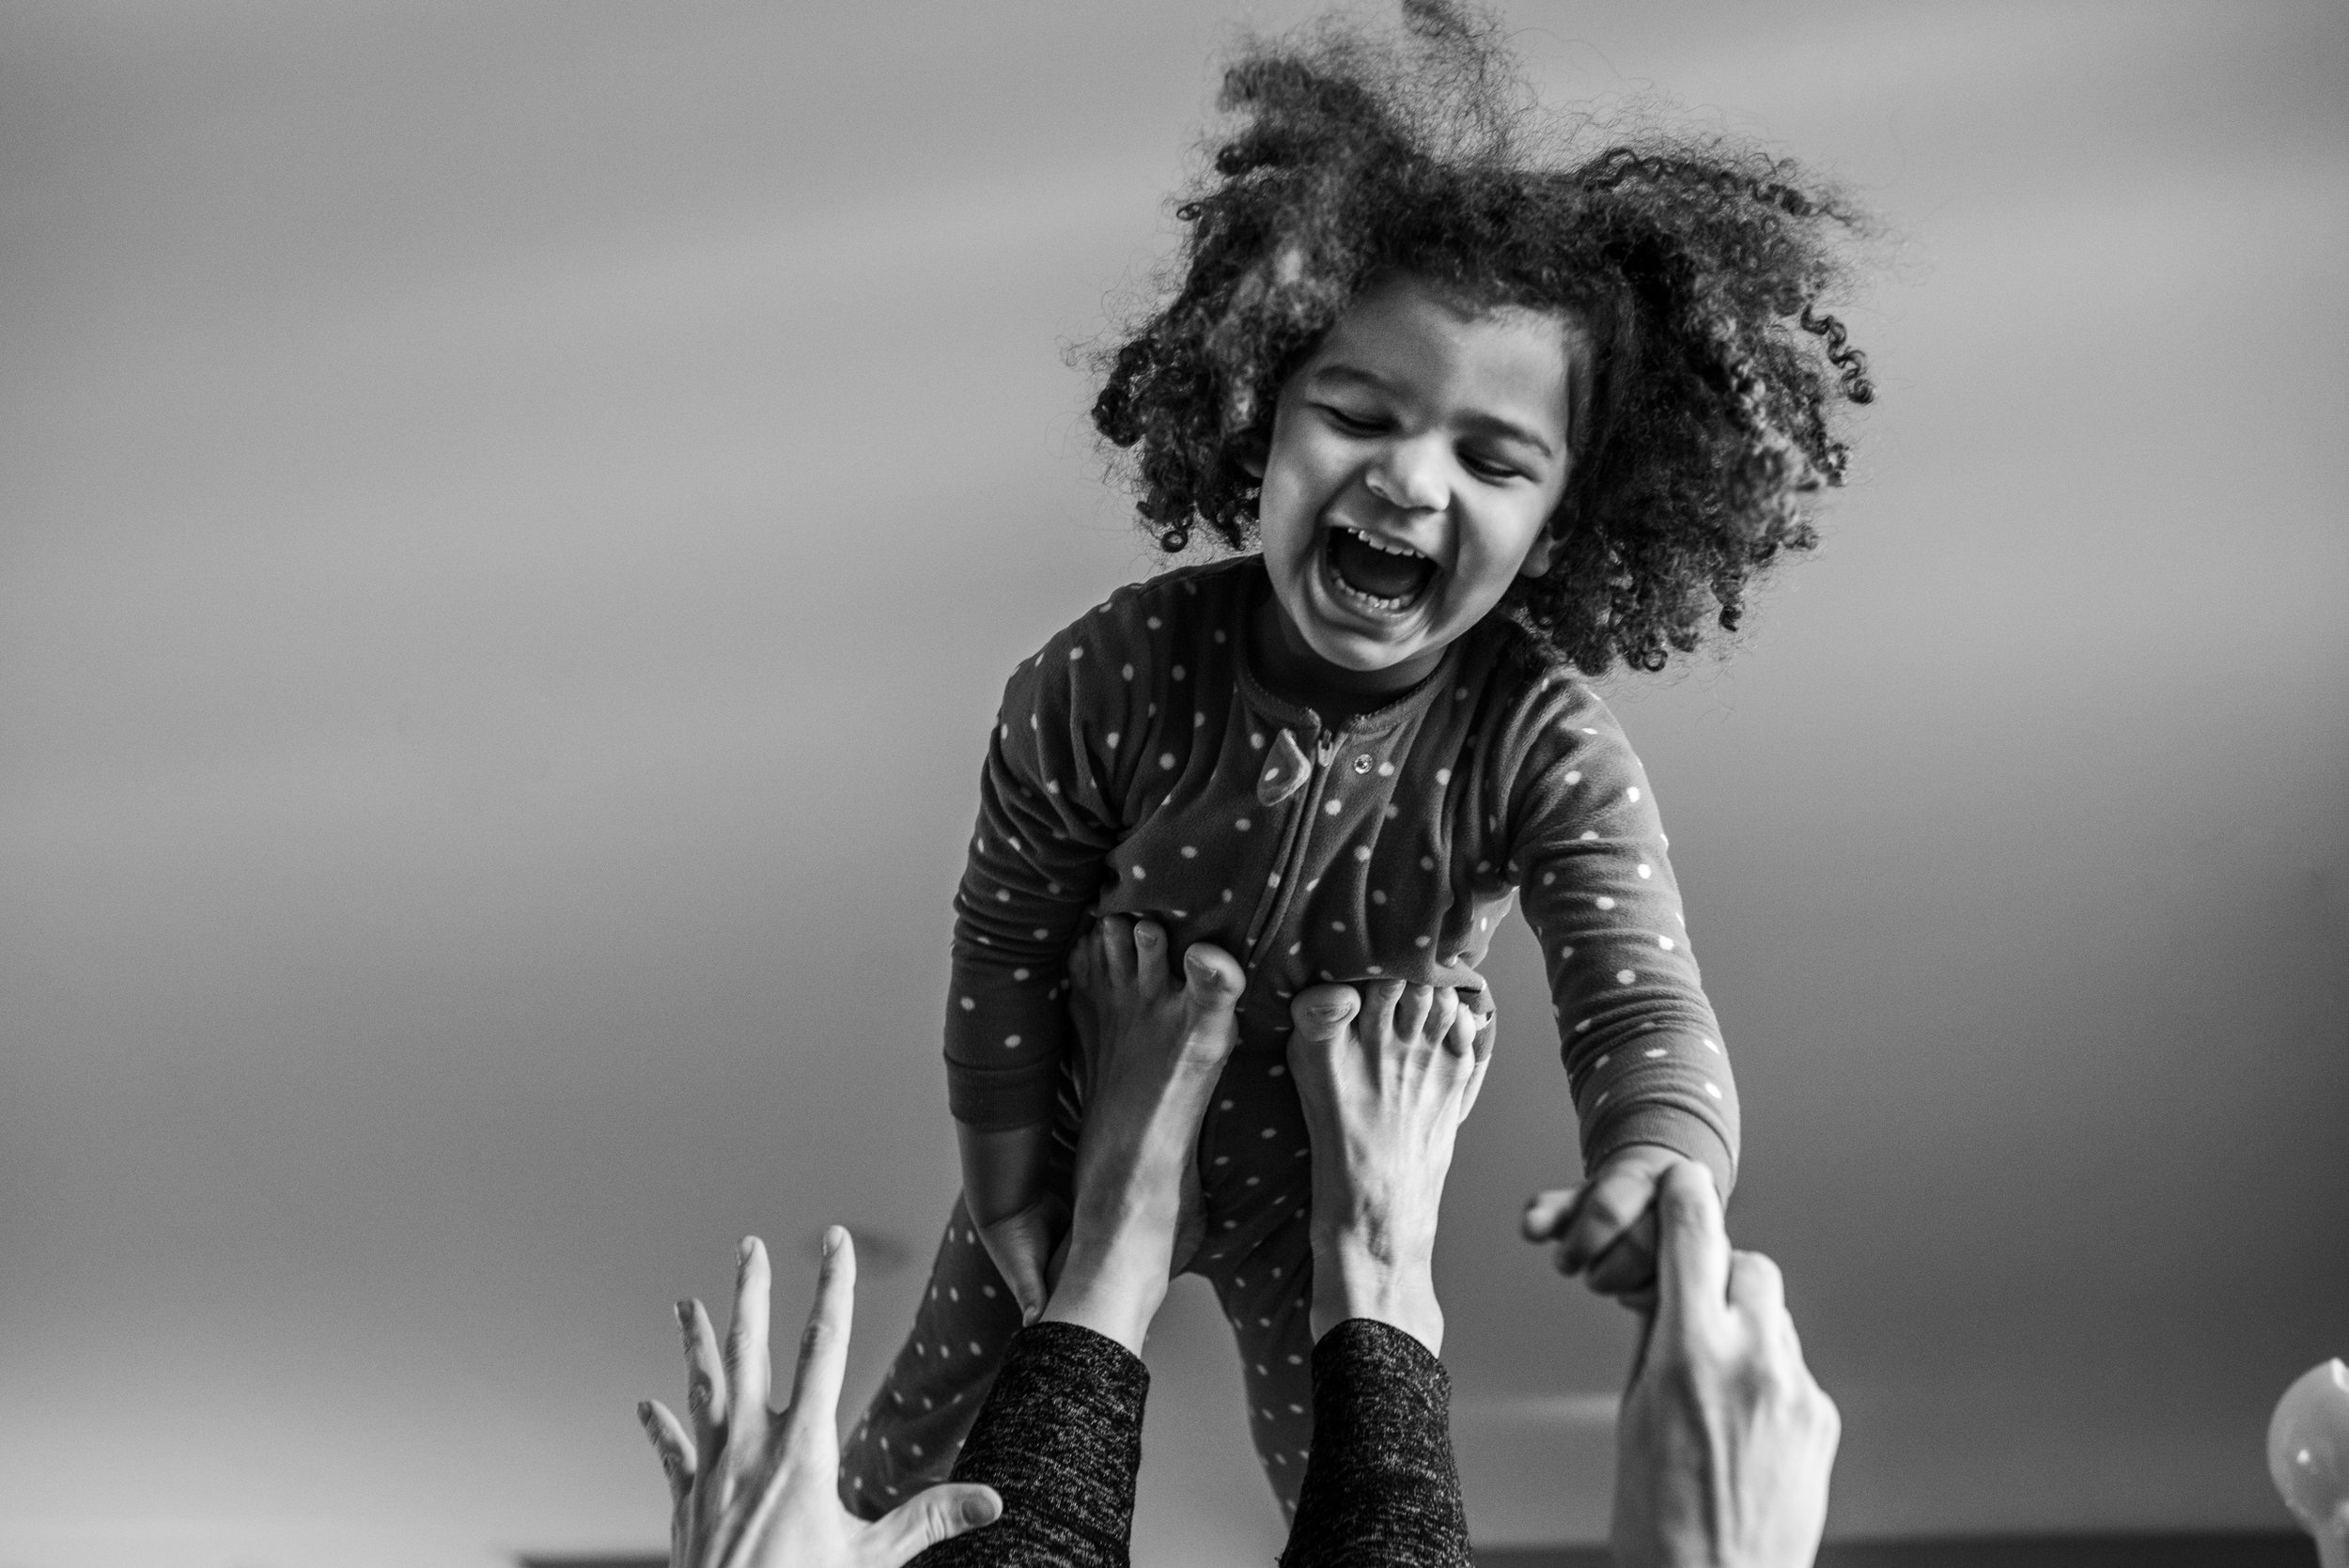 Young girl with curly hair laughing and balancing on moms feet in the air